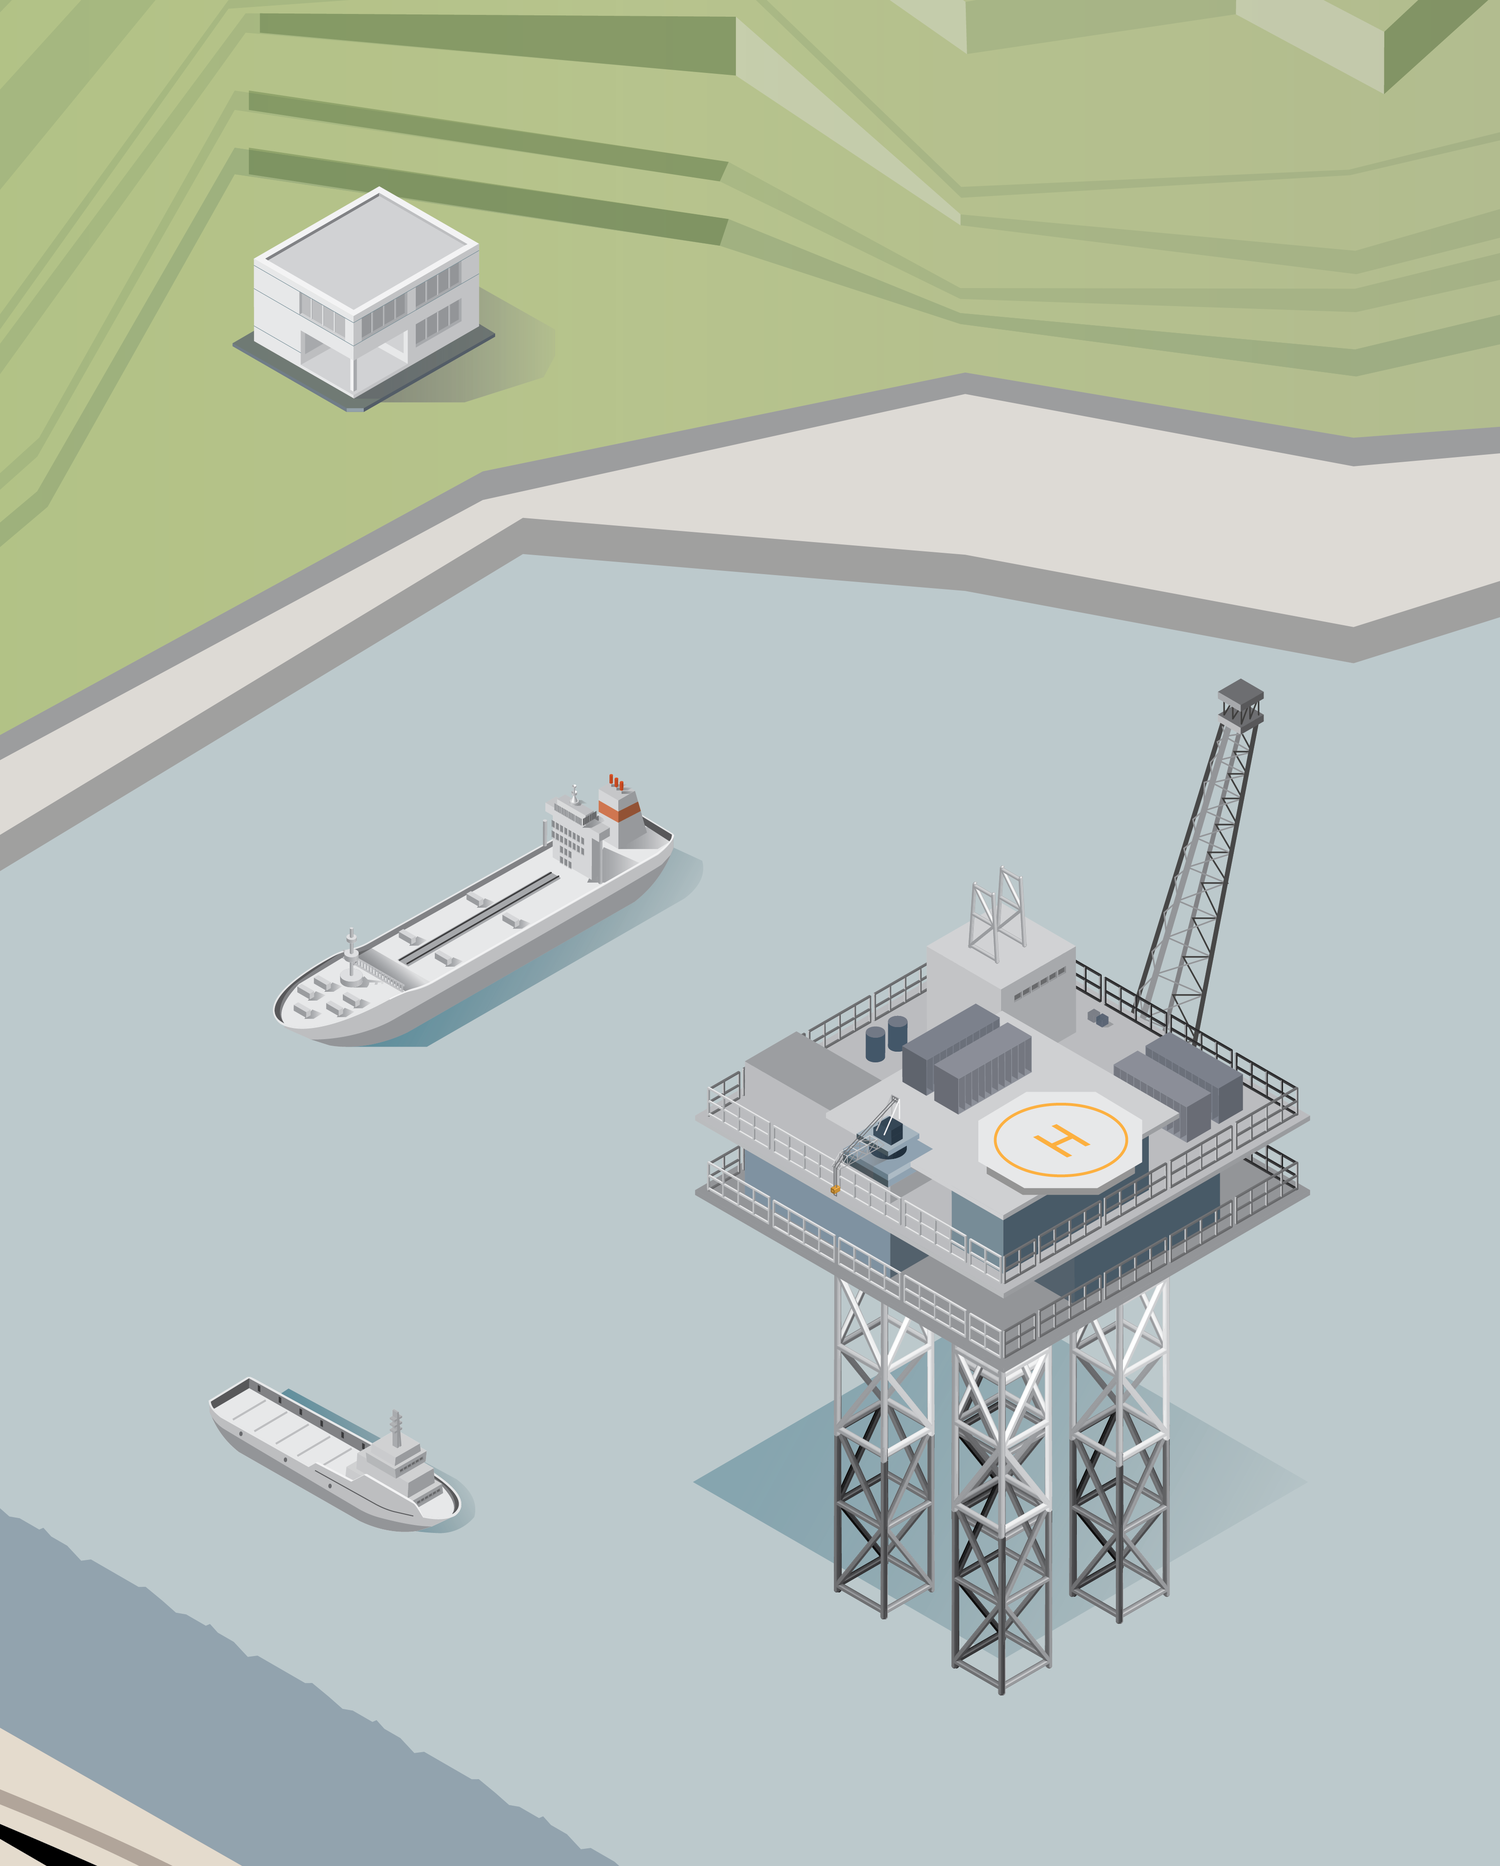 Integrated+Operations+for+Offshore+Oil+&+Gas+EXP-02.png